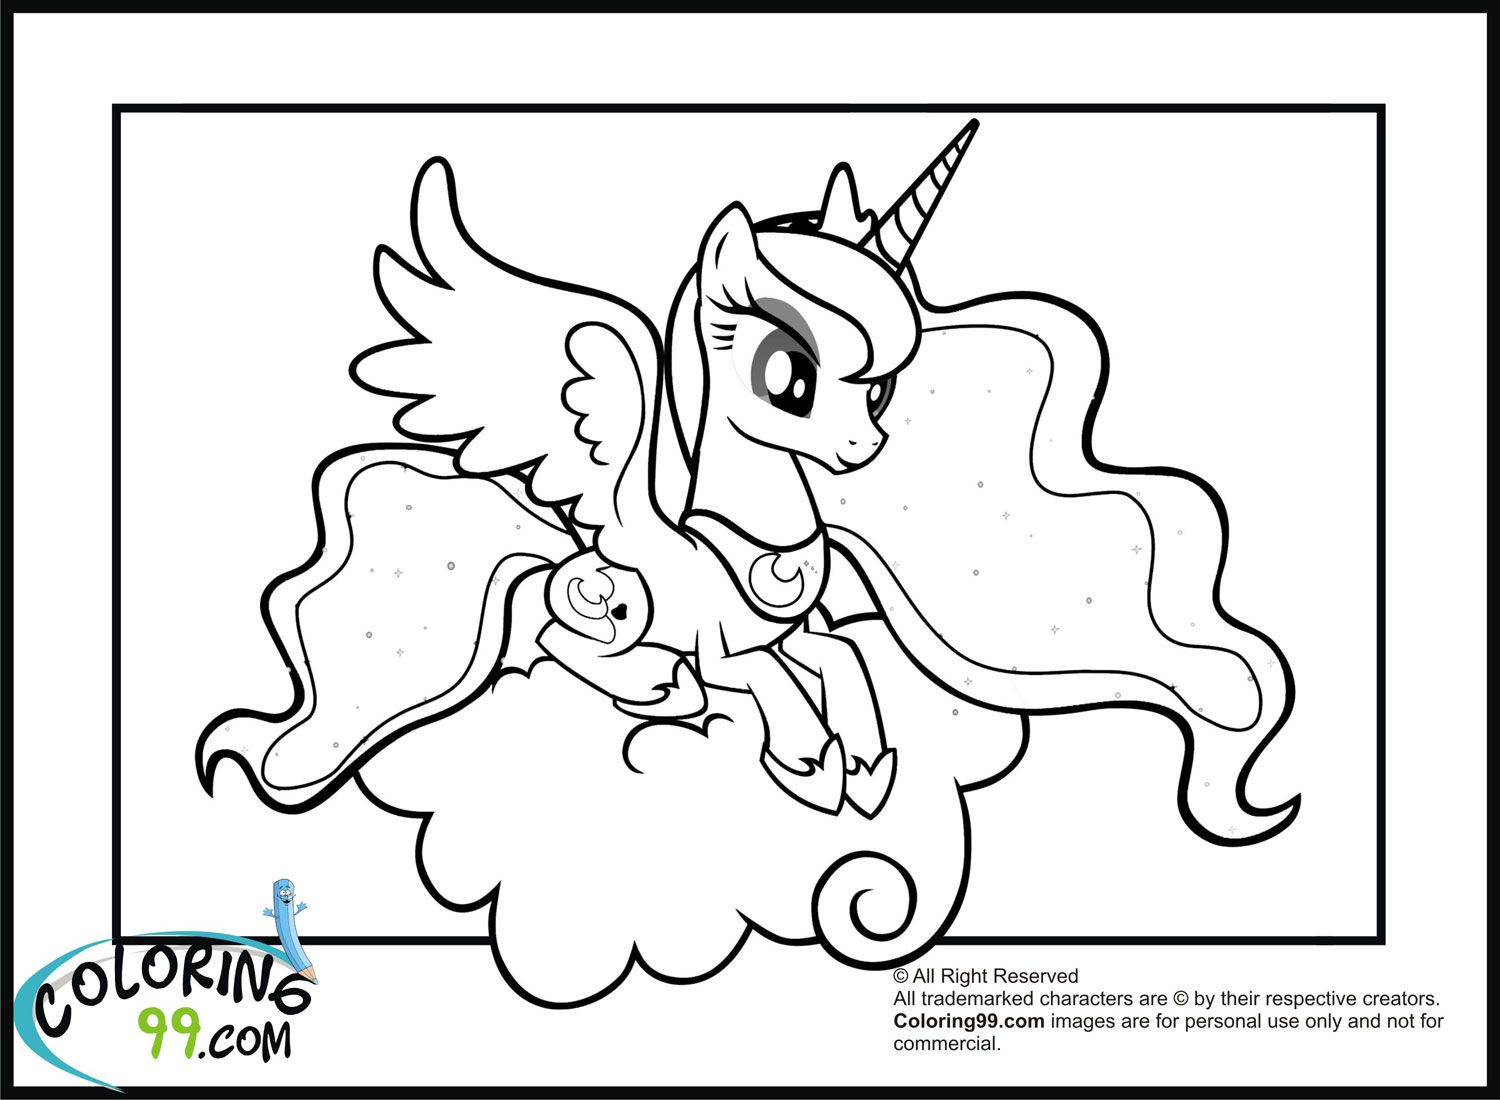 Coloring Pages My Little Pony Princess Luna : My little pony princess luna coloring pages activities